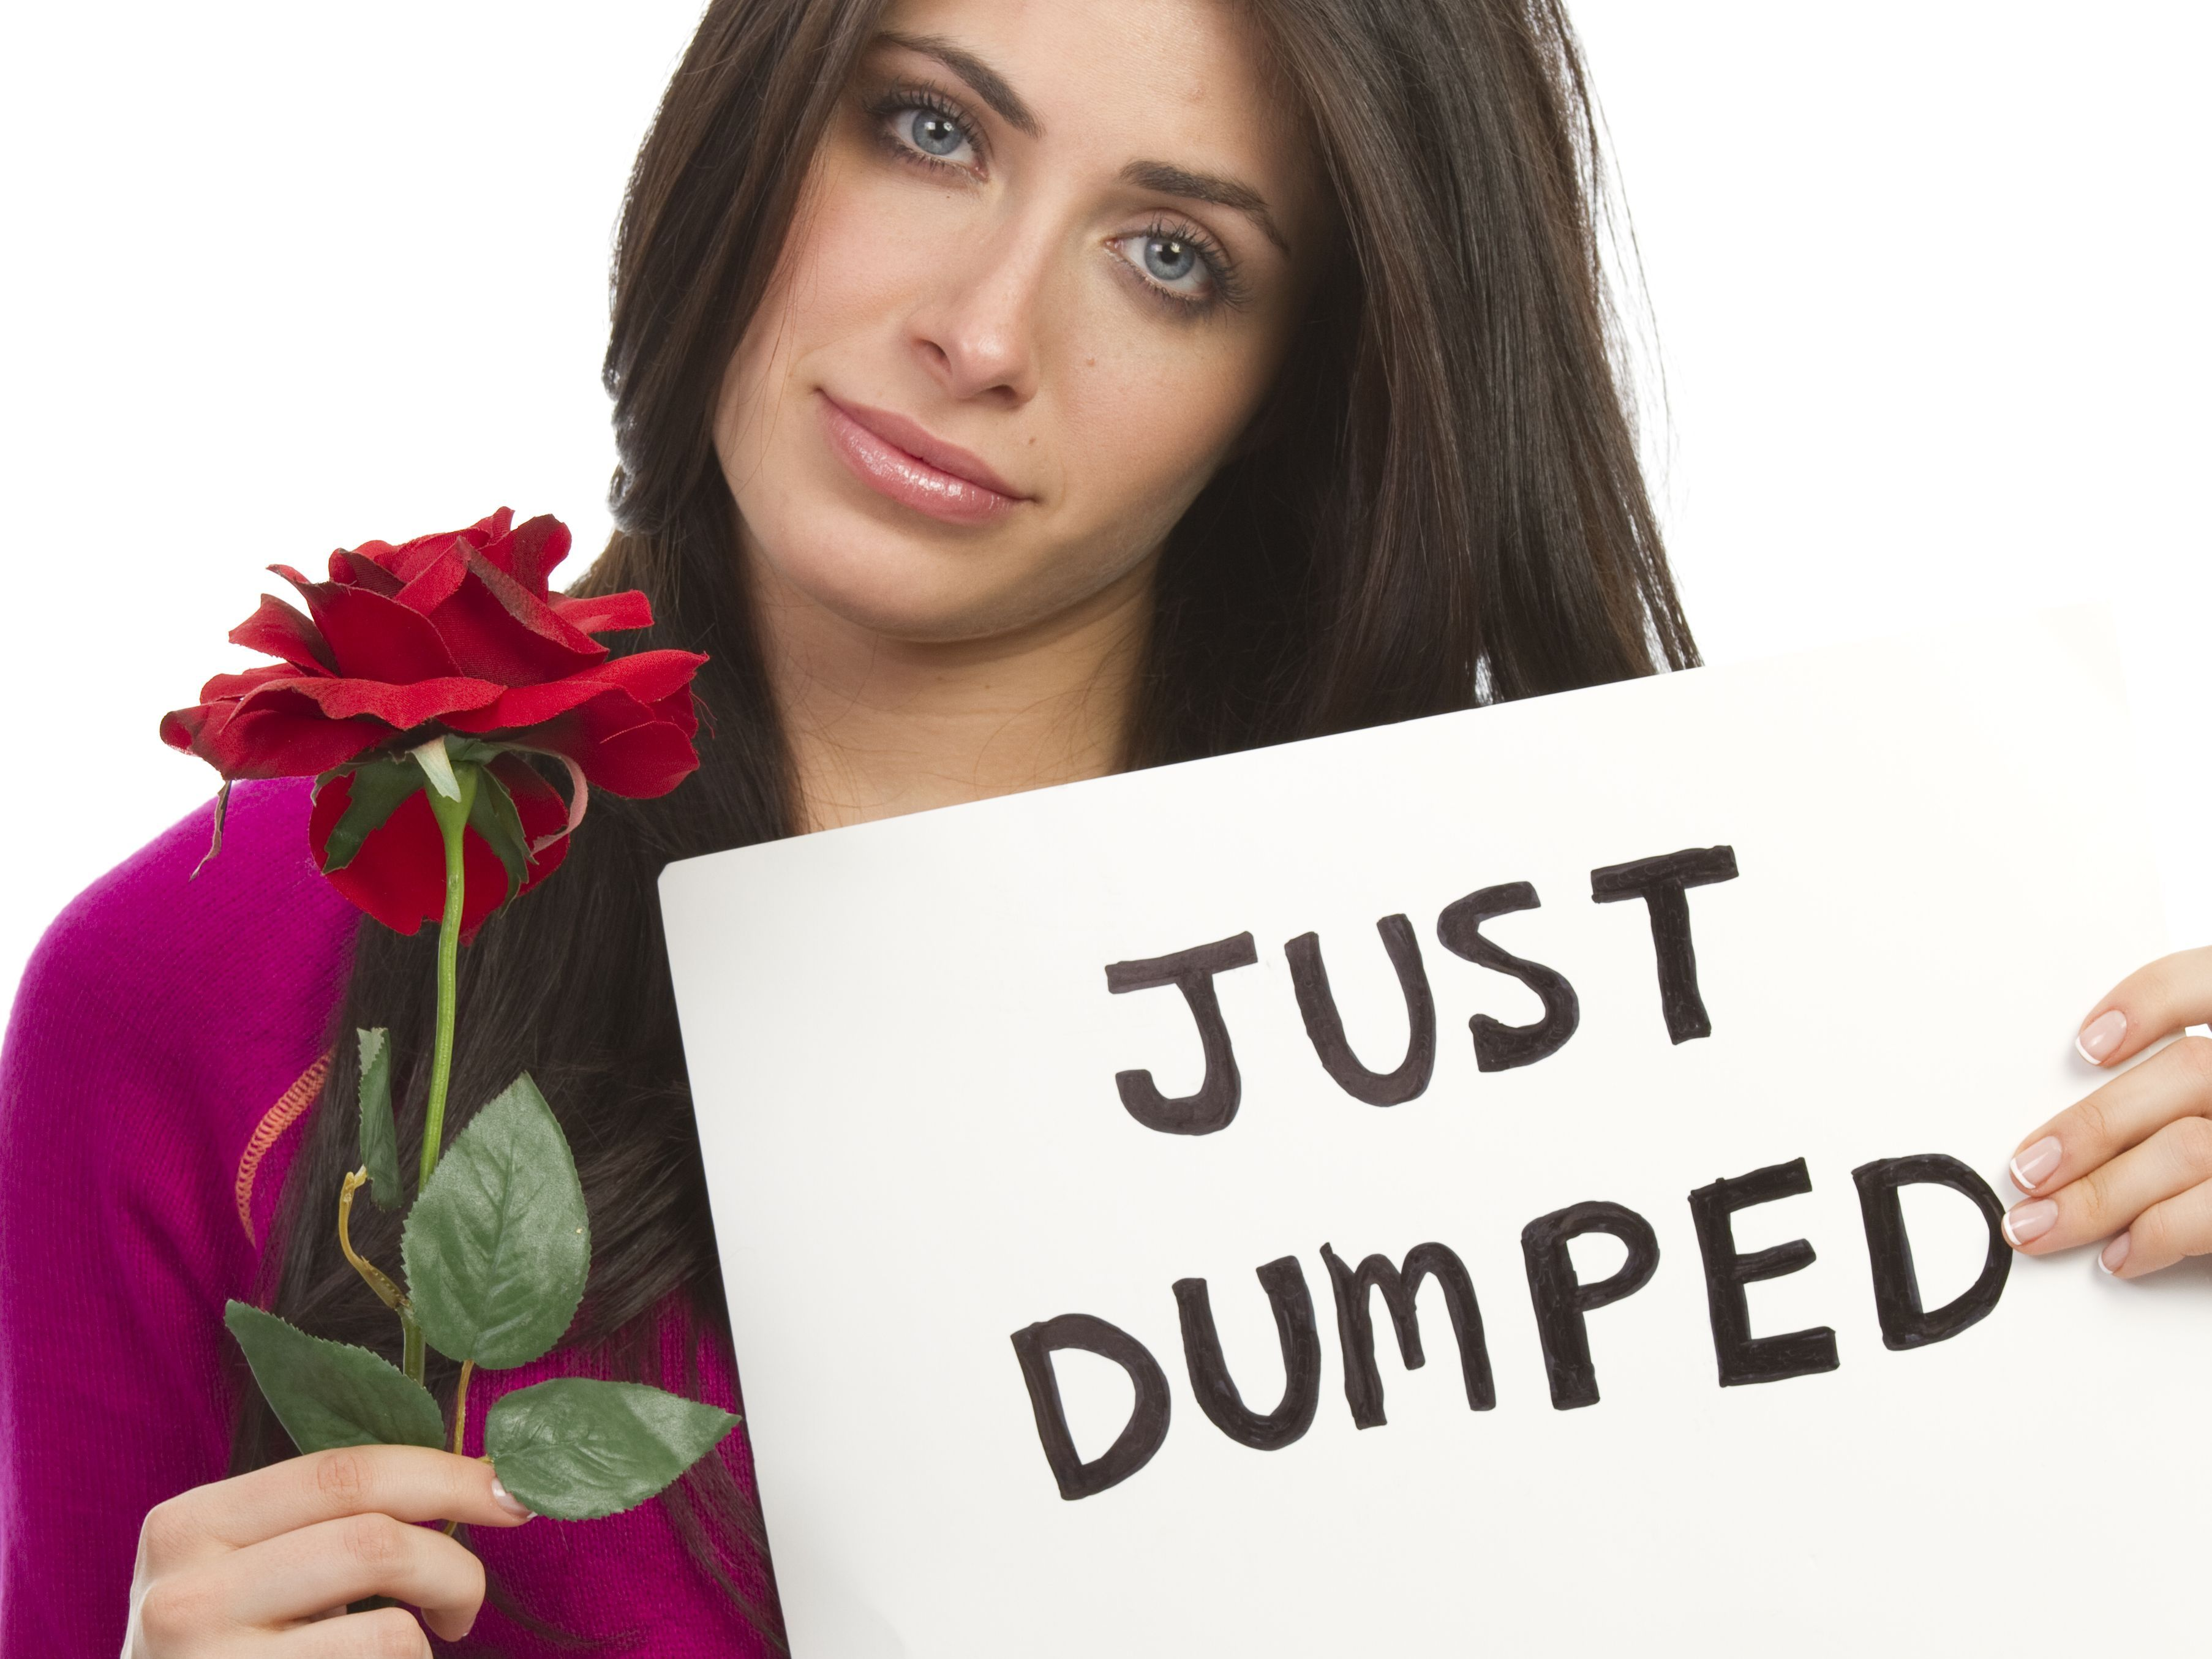 How to dump someone you arent dating